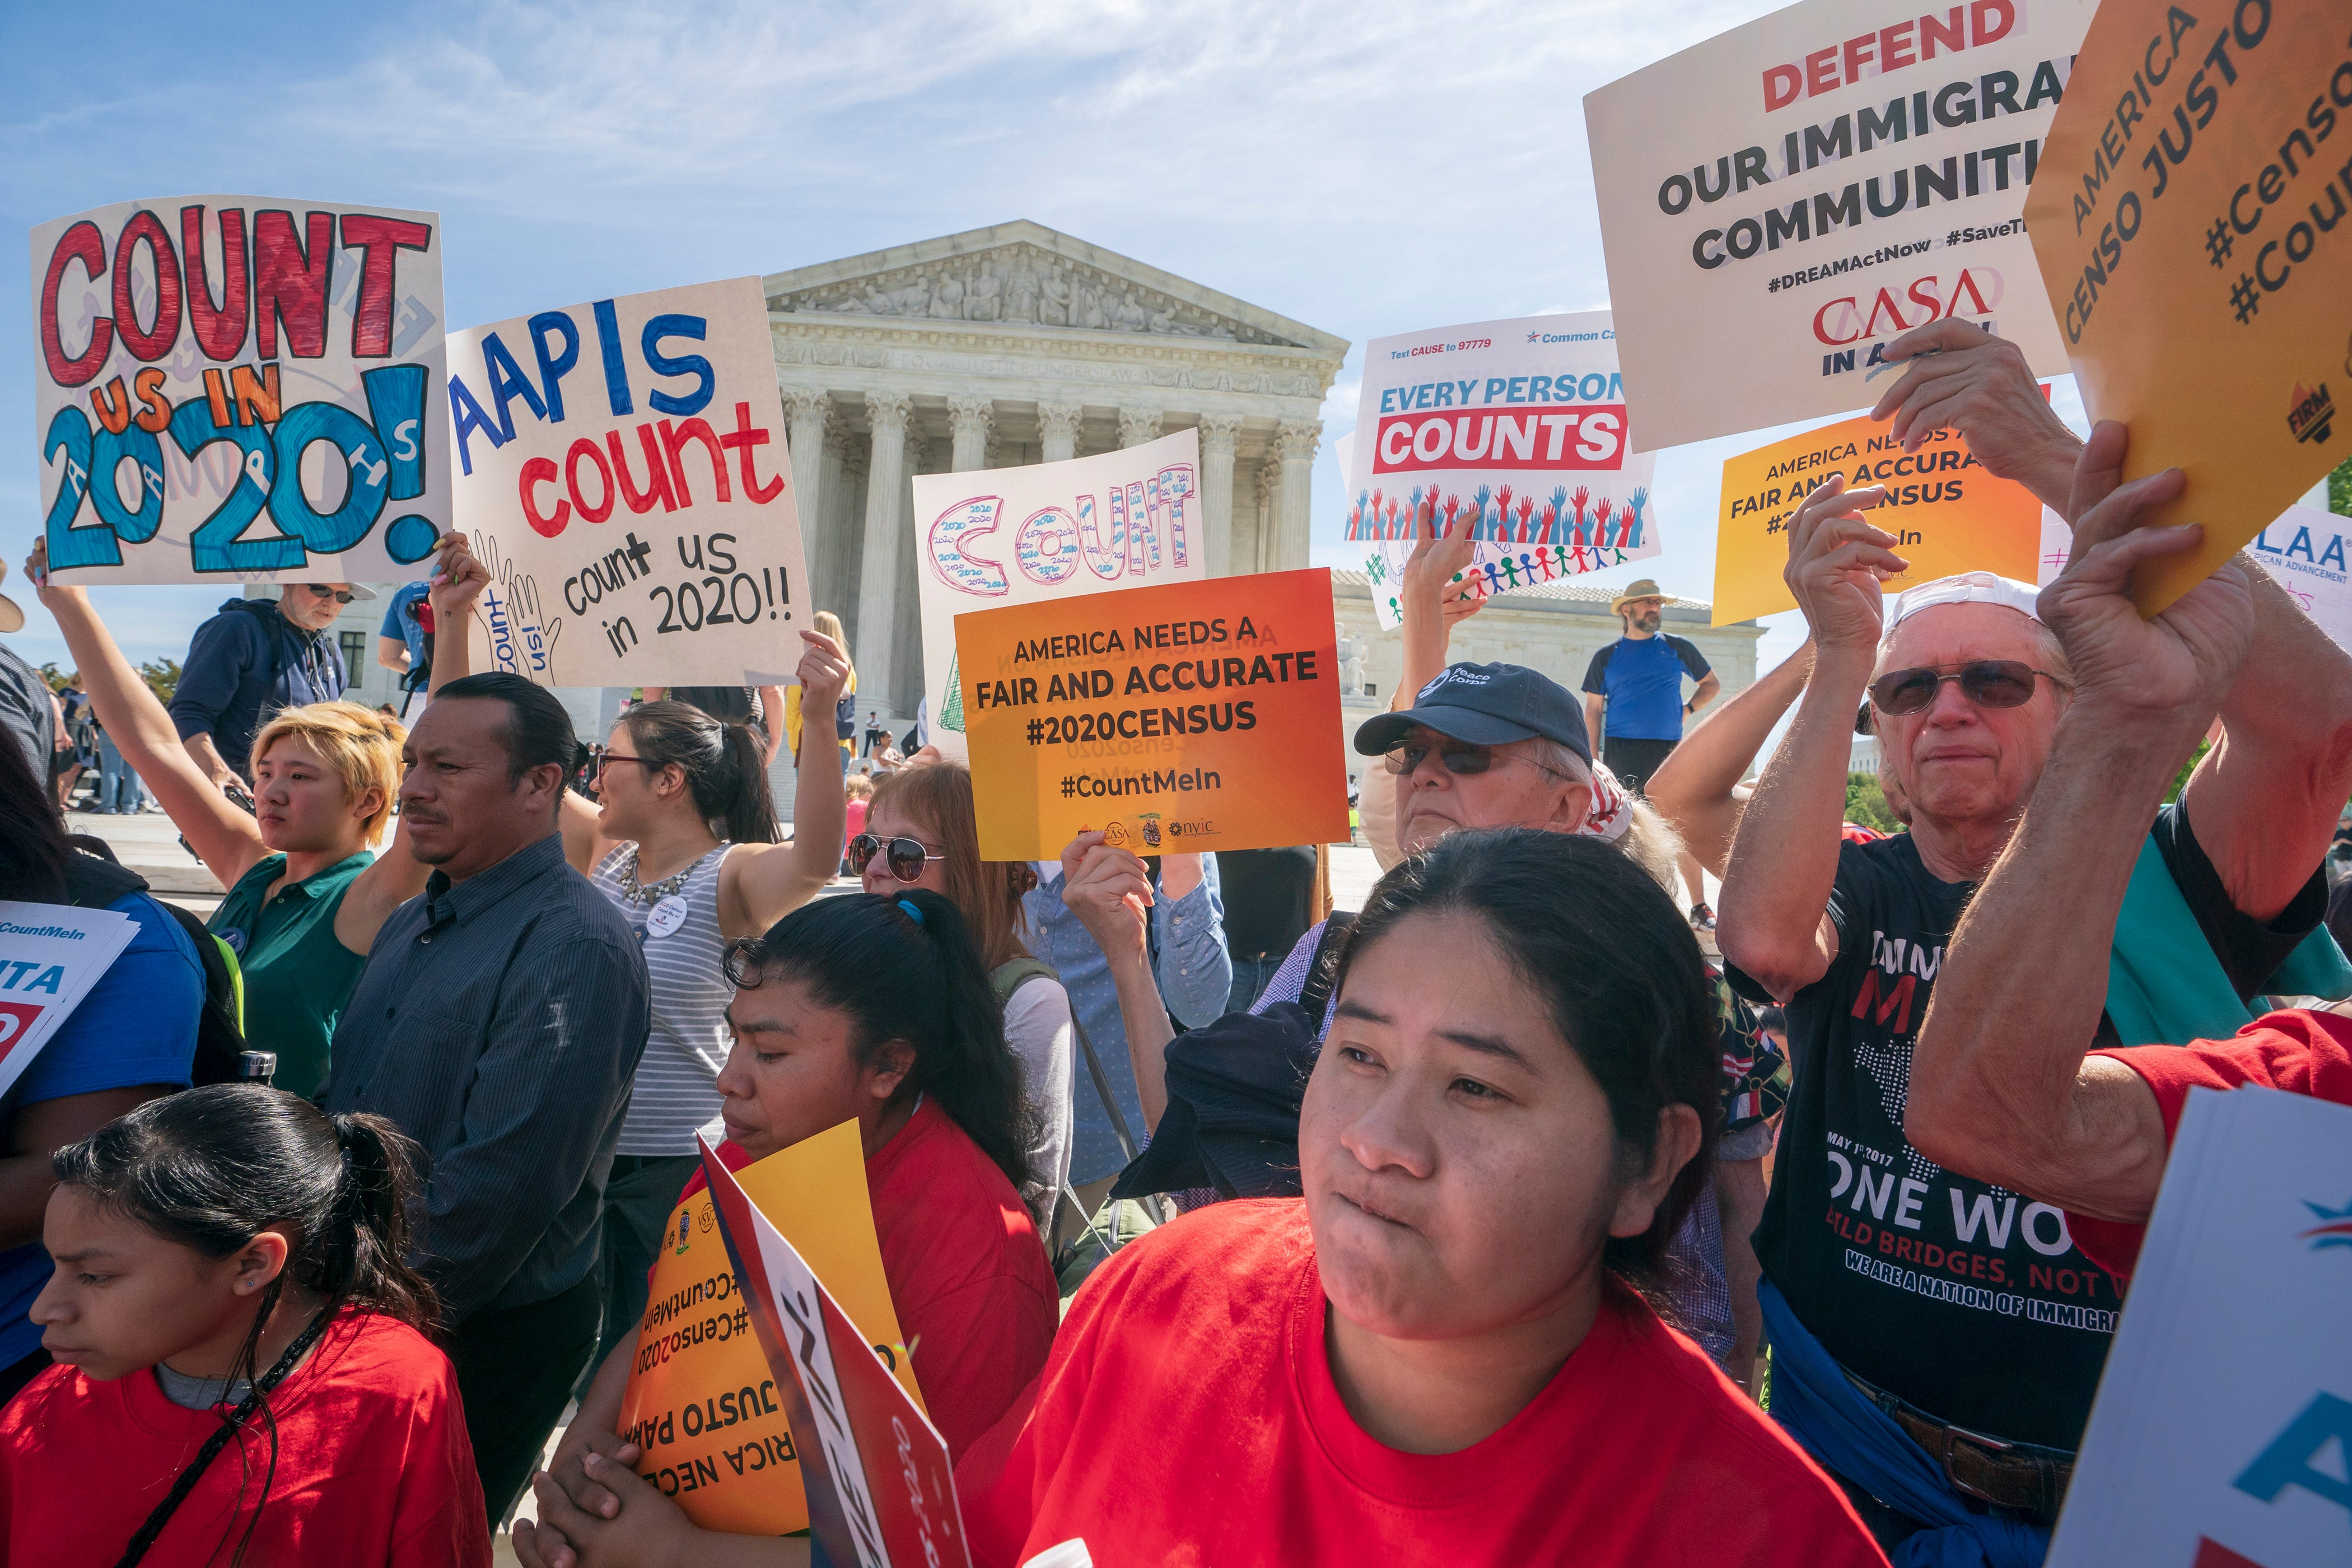 Immigration activists rally outside the Supreme Court in April as the justices hear arguments on the Trump administration's plan to ask about citizenship in the 2020 census.